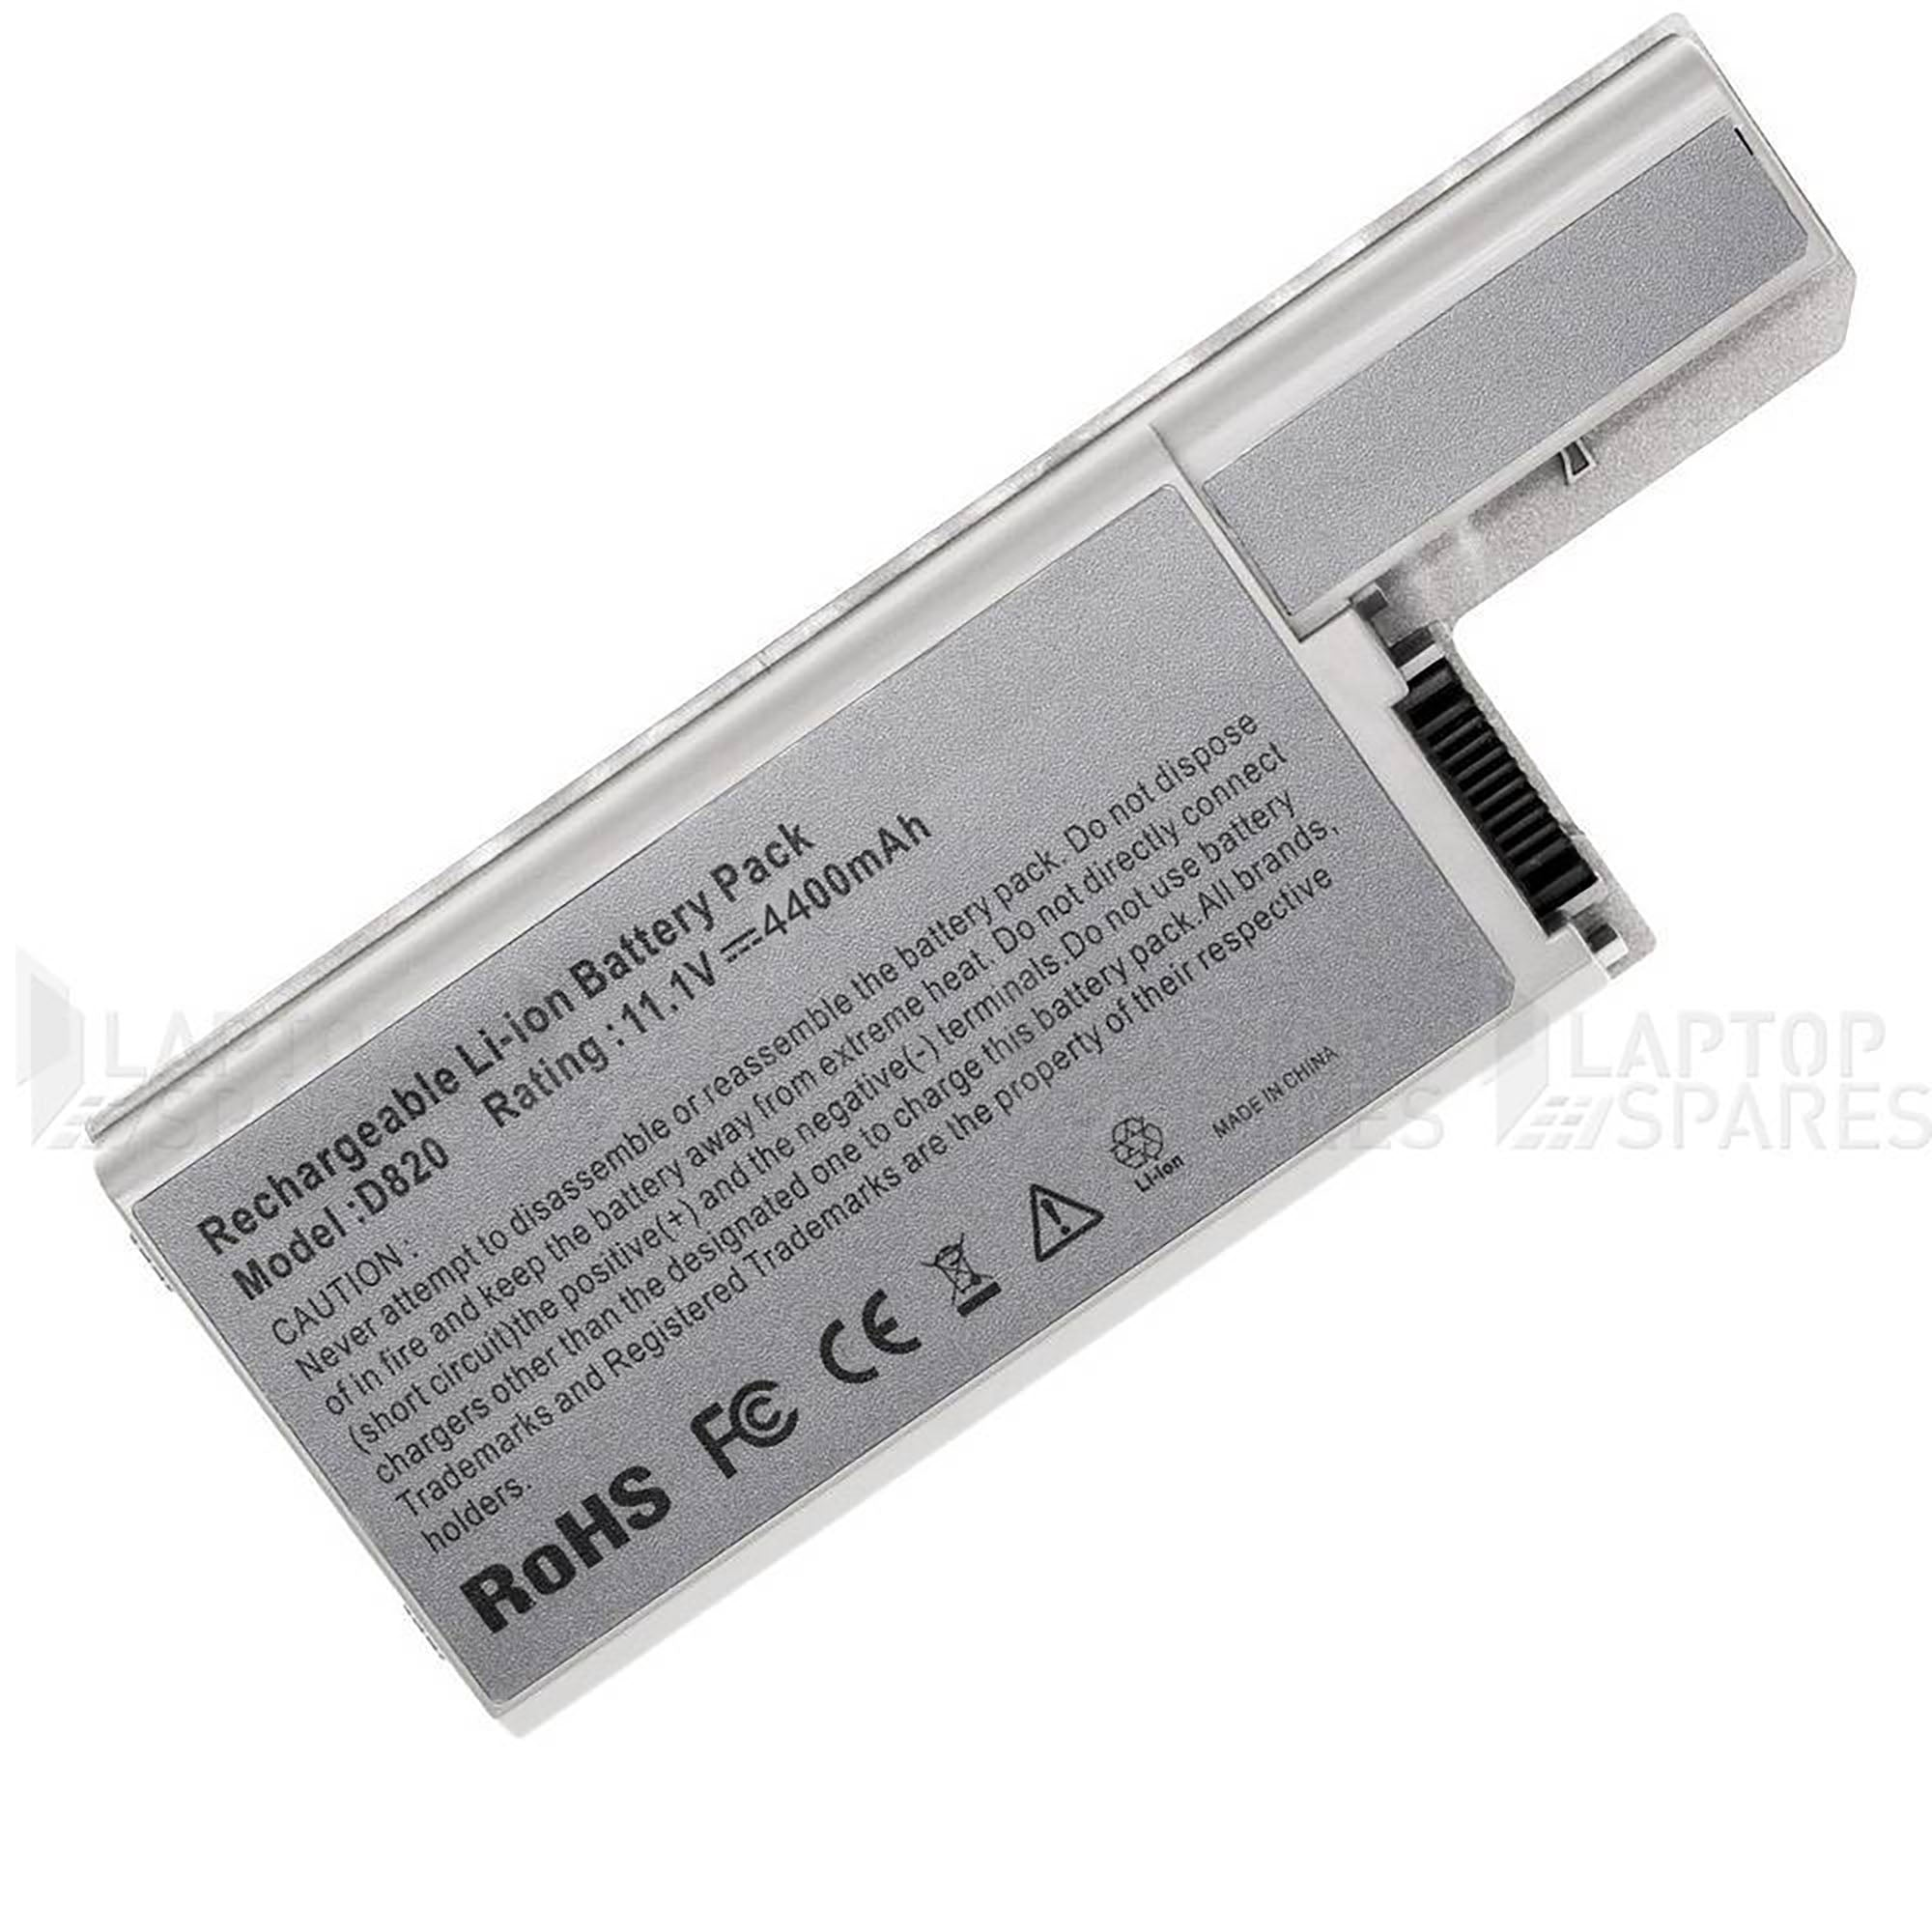 Dell Latitude D531 D531N 4400mAh 6 Cell Battery